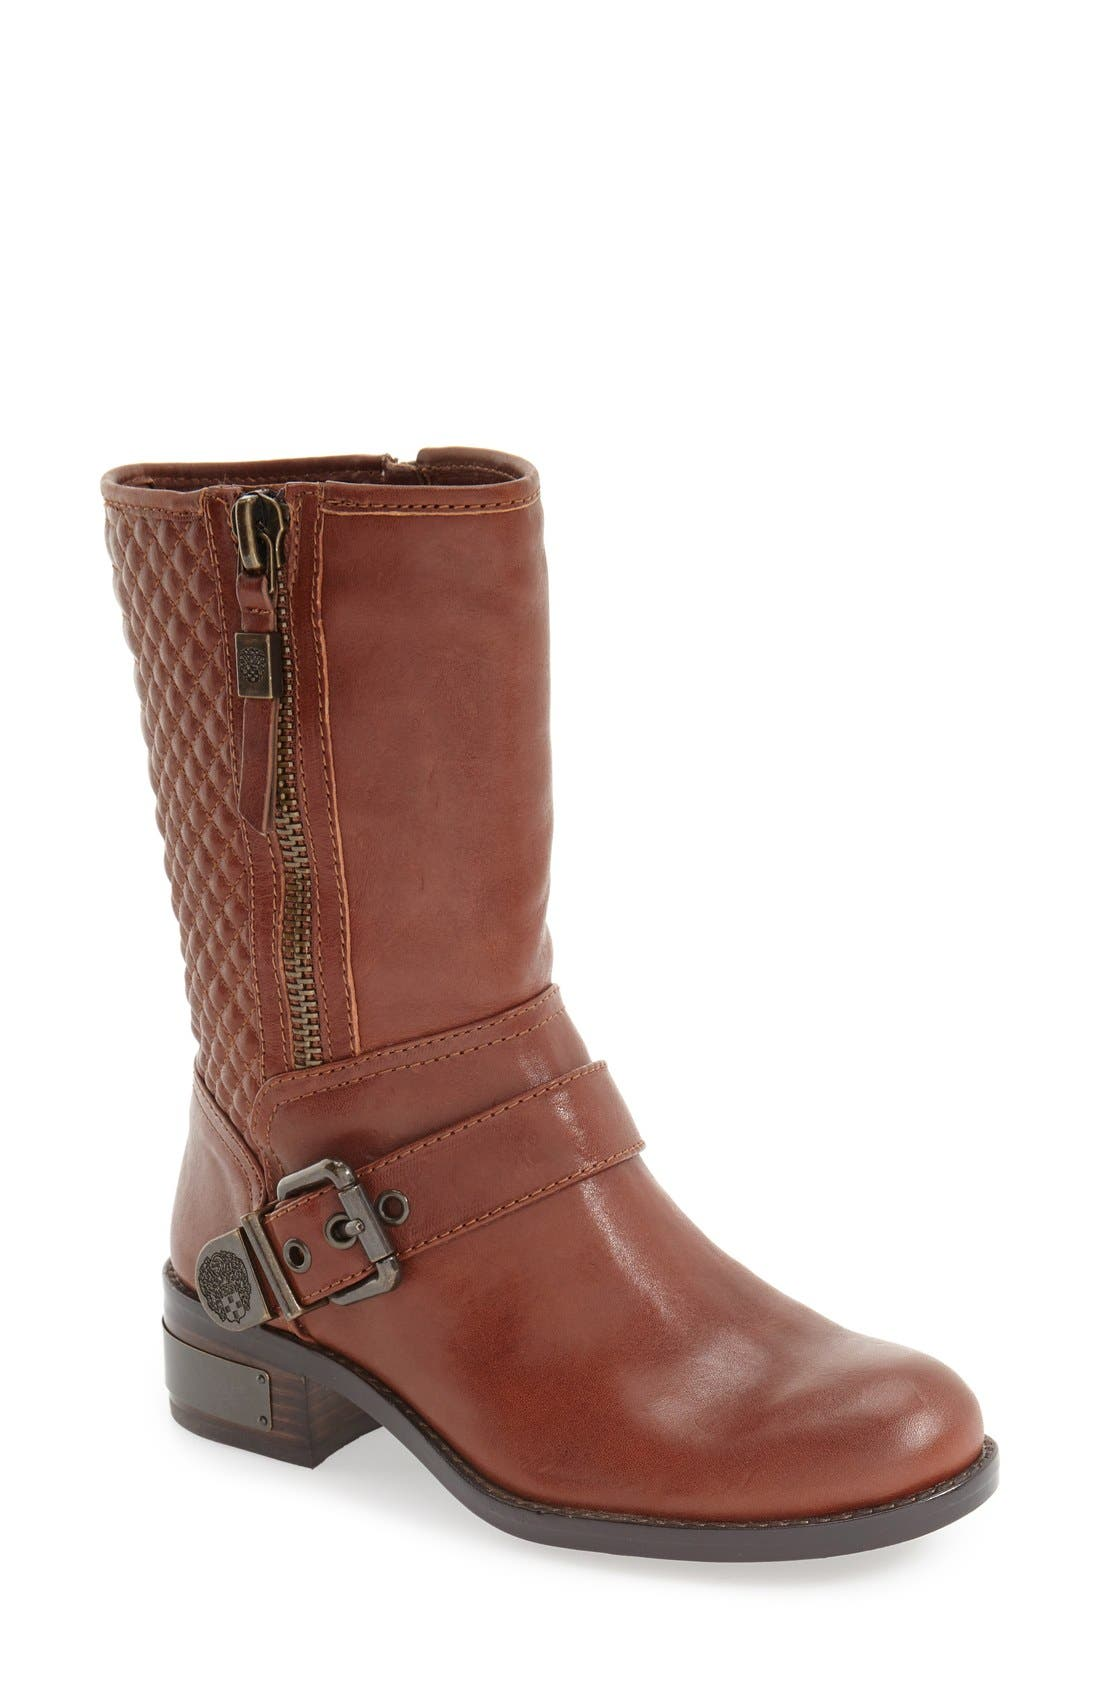 Alternate Image 1 Selected - Vince Camuto 'Whynn' Moto Boot (Women)